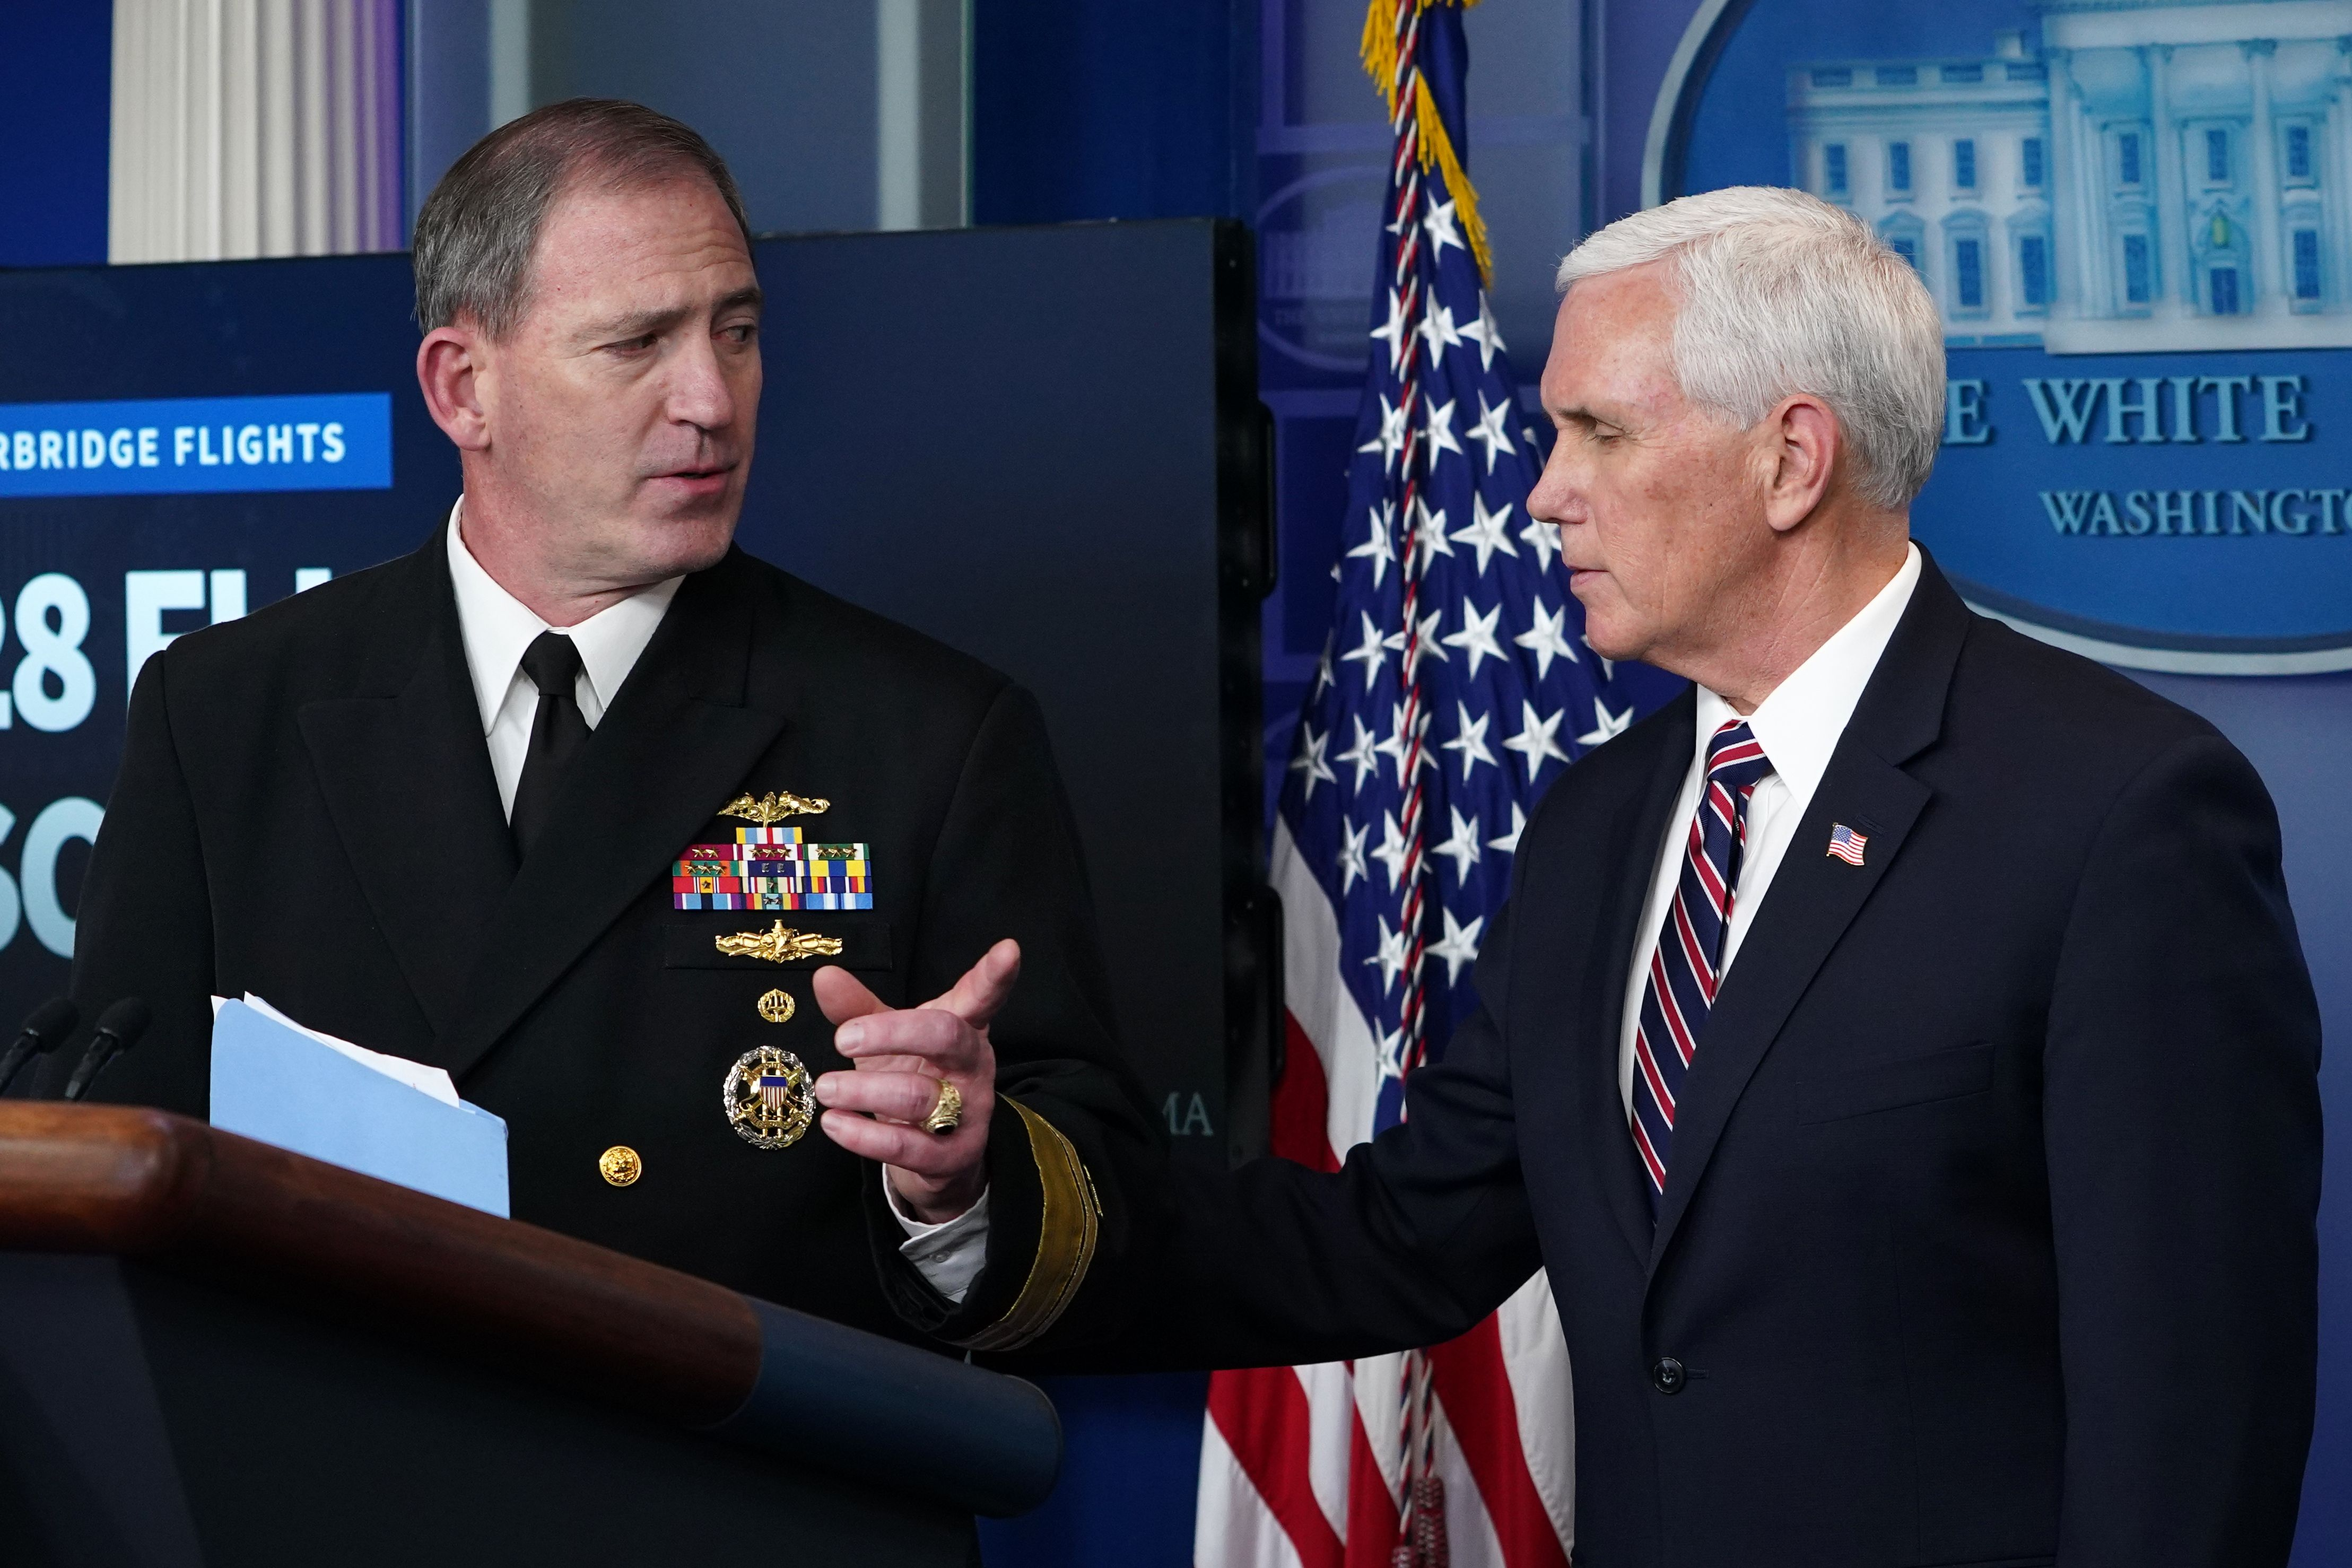 Rear Adm. John Polowczyk (L) and US Vice President Mike Pence speak during the daily briefing on the novel coronavirus, COVID-19, in the Brady Briefing Room at the White House on April 2, 2020, in Washington, DC. (Photo by MANDEL NGAN/AFP via Getty Images)